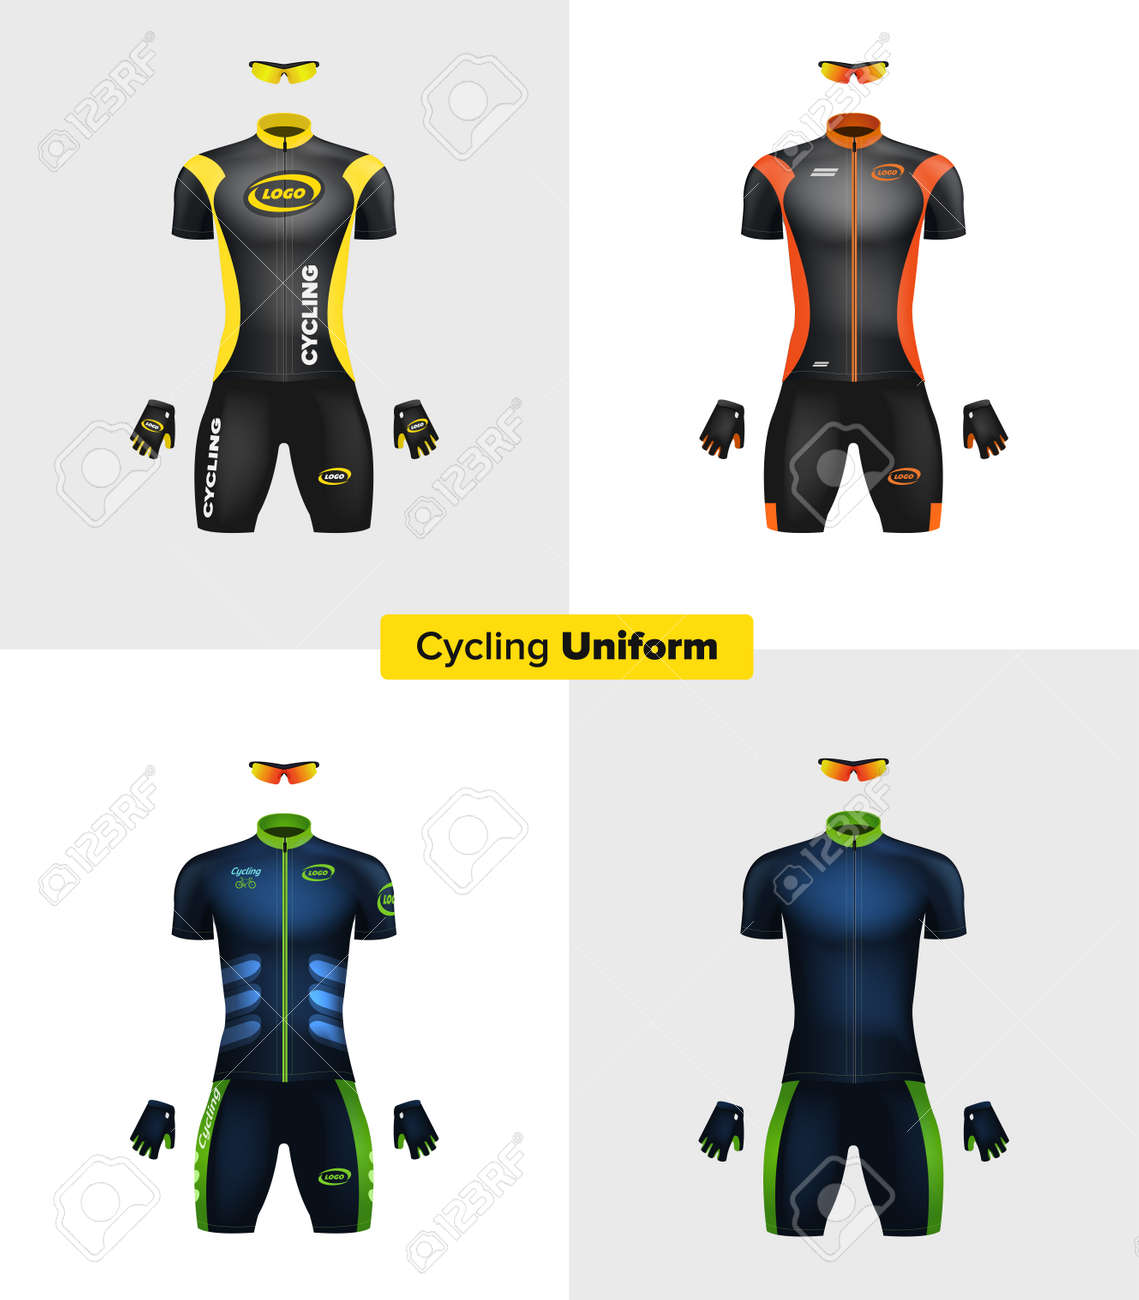 Cycling Clothing Realistic Vector Cycling Uniforms Branding Mockup Bike Or Bicycle